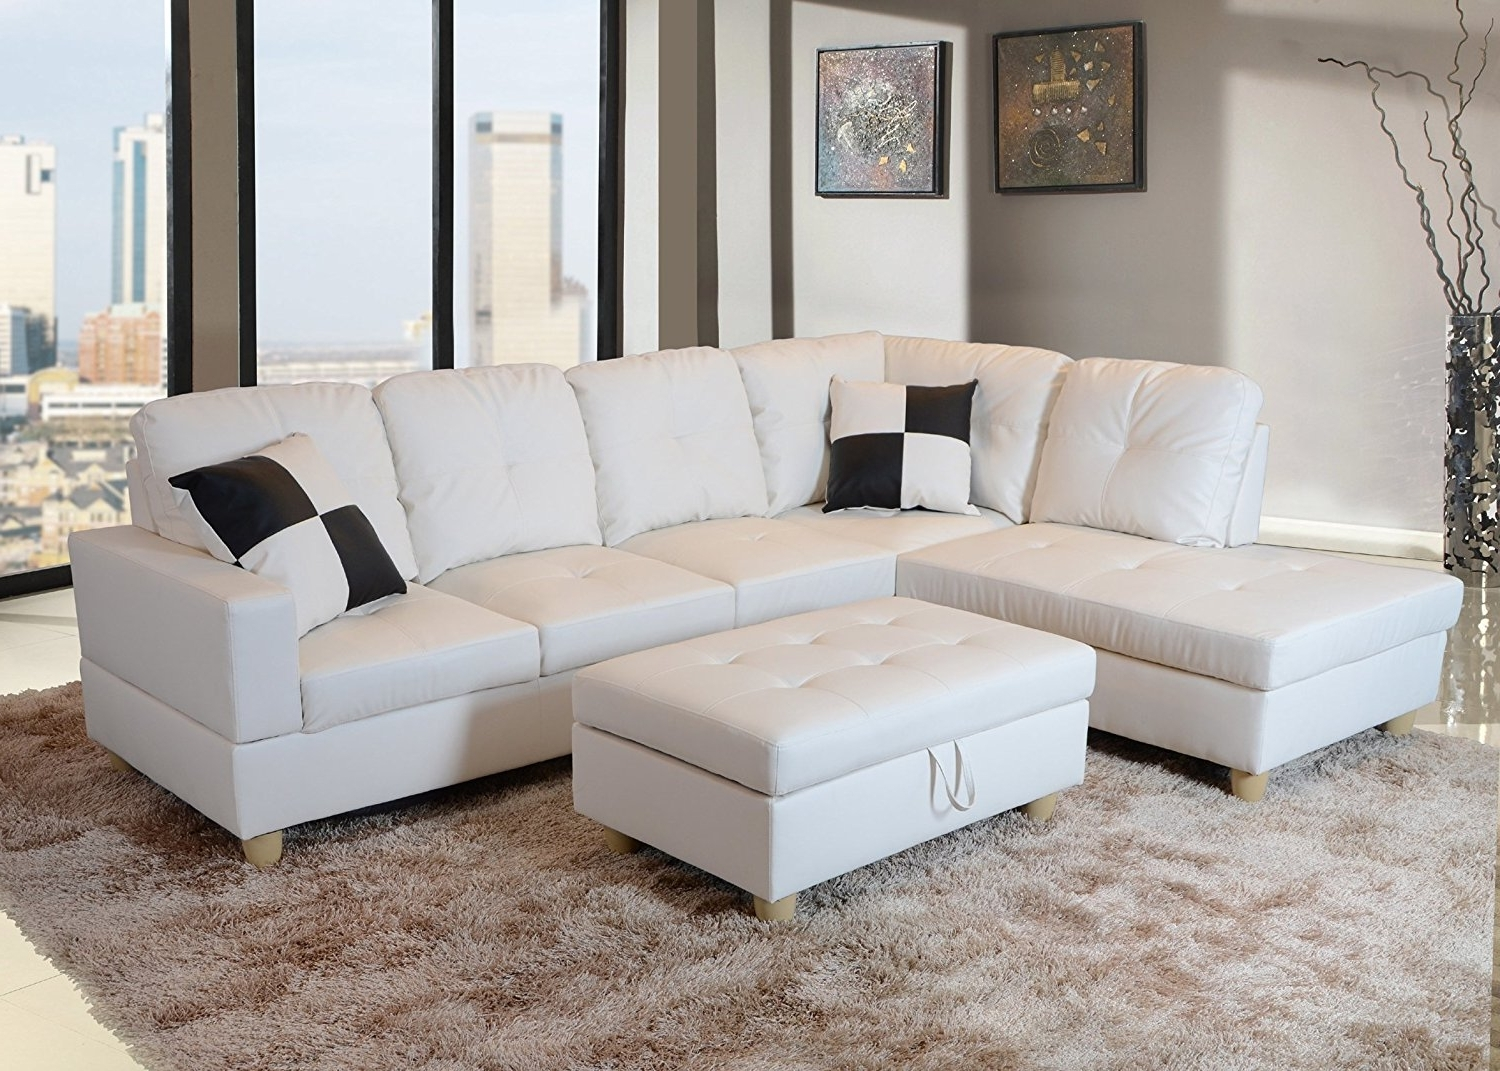 Most Current Amazon: Lifestyle Faux Leather Right Facing Sectional Sofa Set Regarding Leather Sectional Sofas With Ottoman (View 10 of 15)